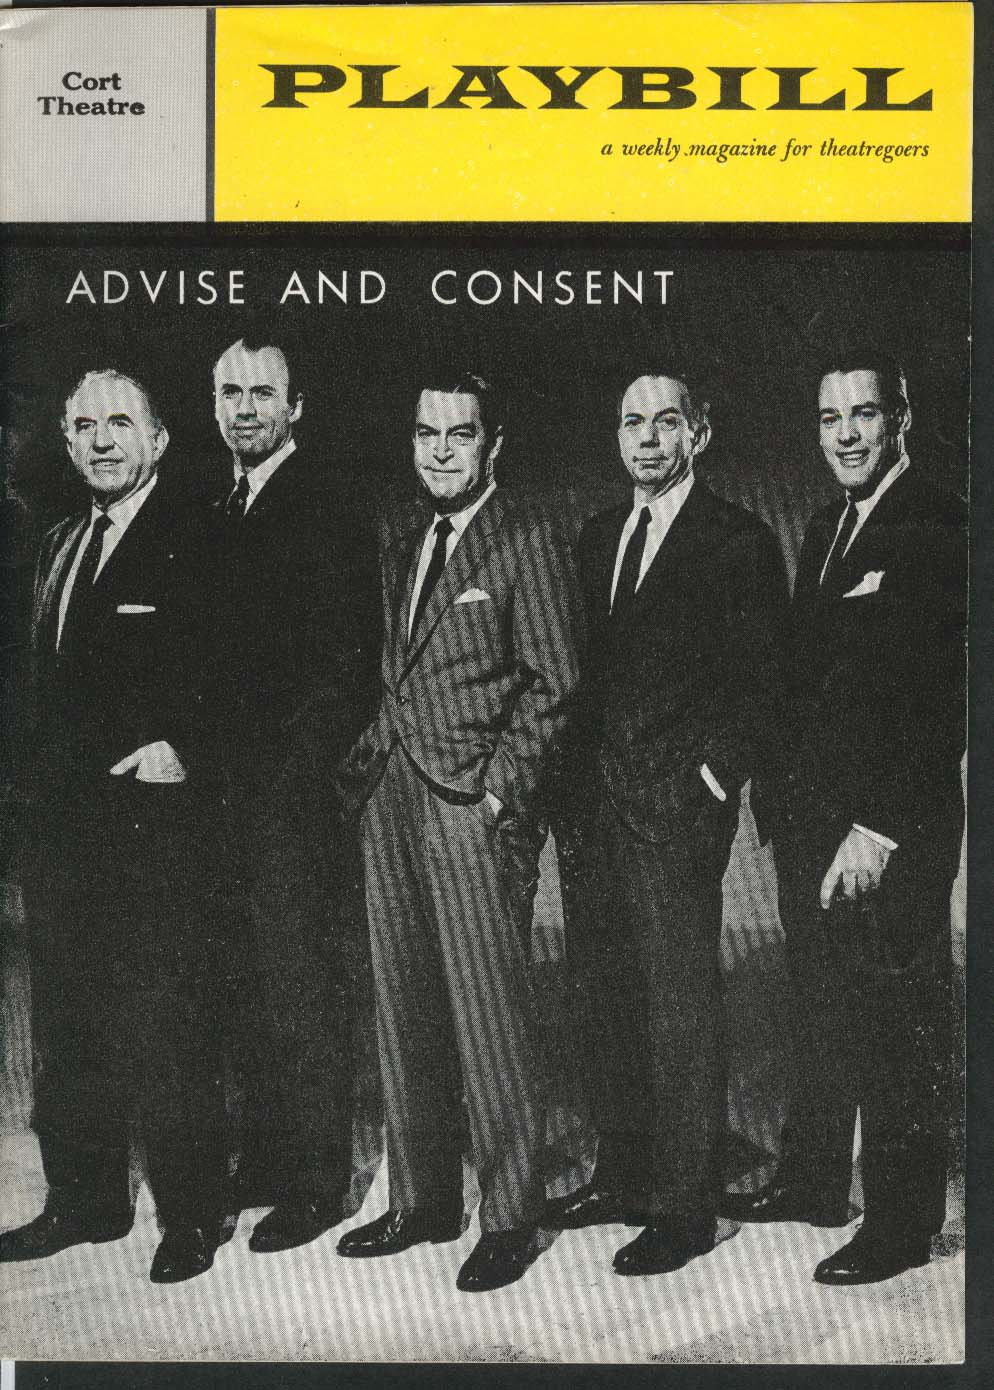 Image for Advise and Consent Playbill 3/6/61 Ed Begley Richard Kiley Kevin McCarthy Cort